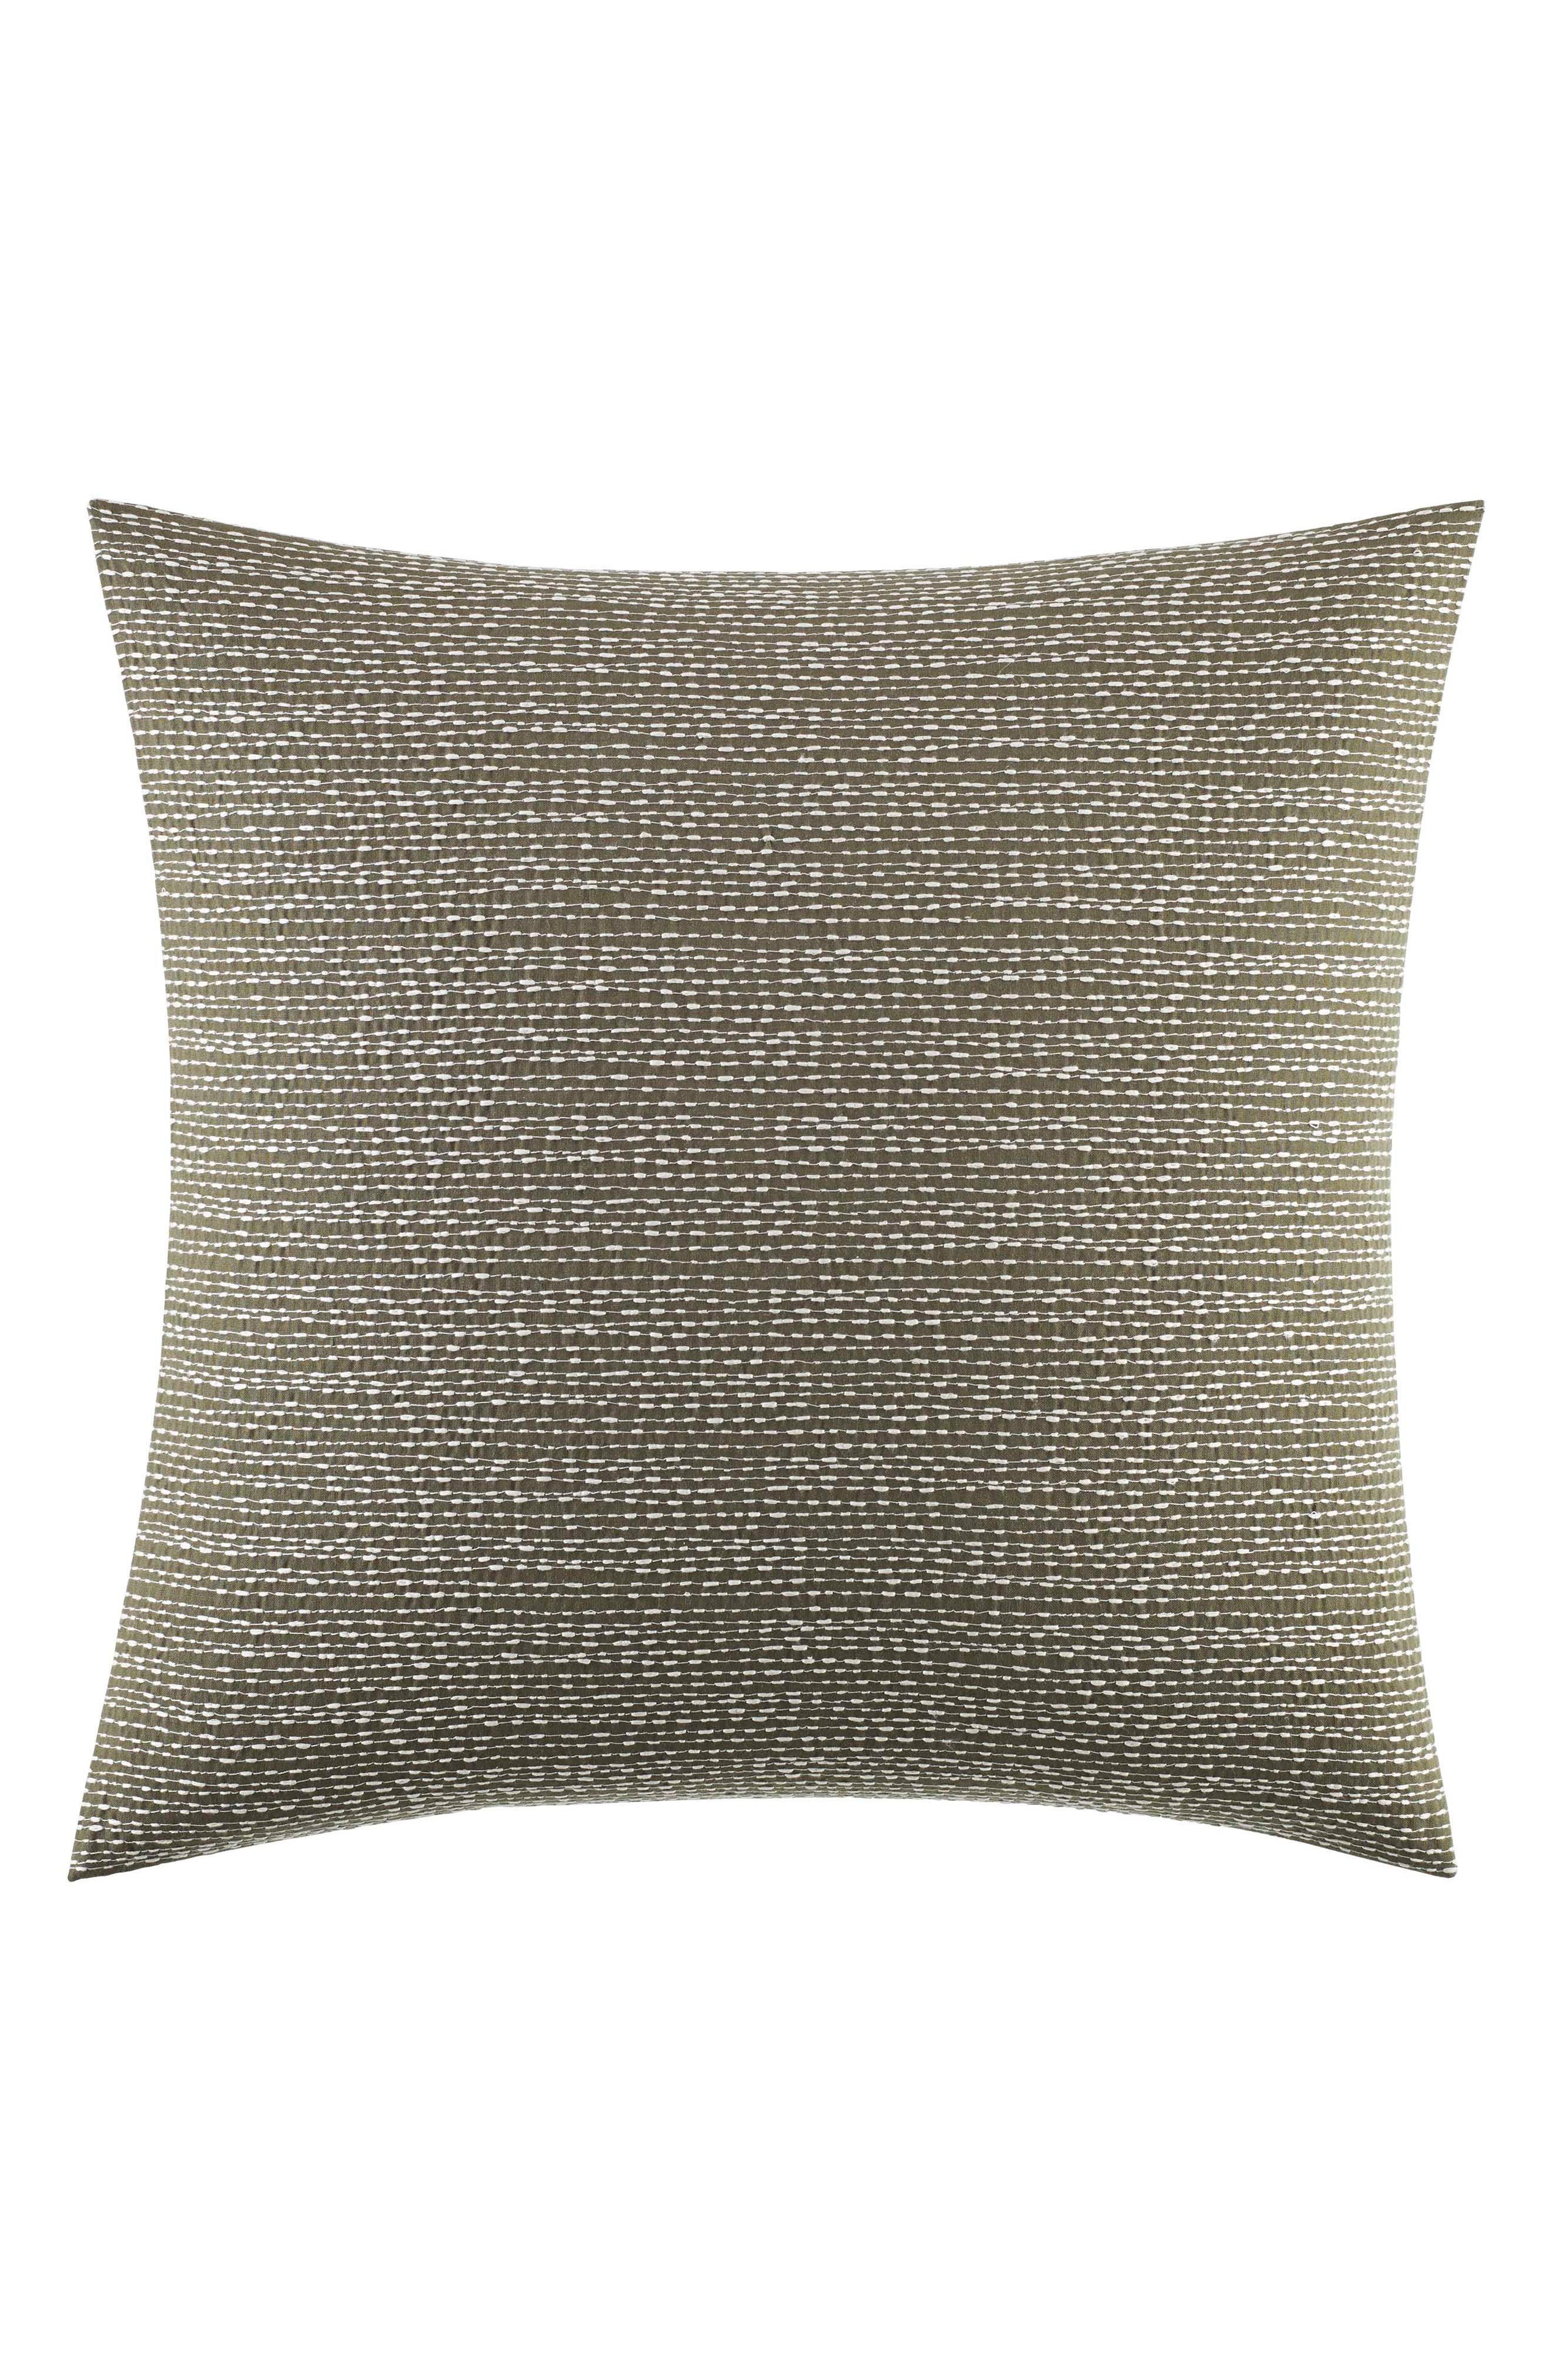 Dragonfly Accent Pillow,                             Main thumbnail 1, color,